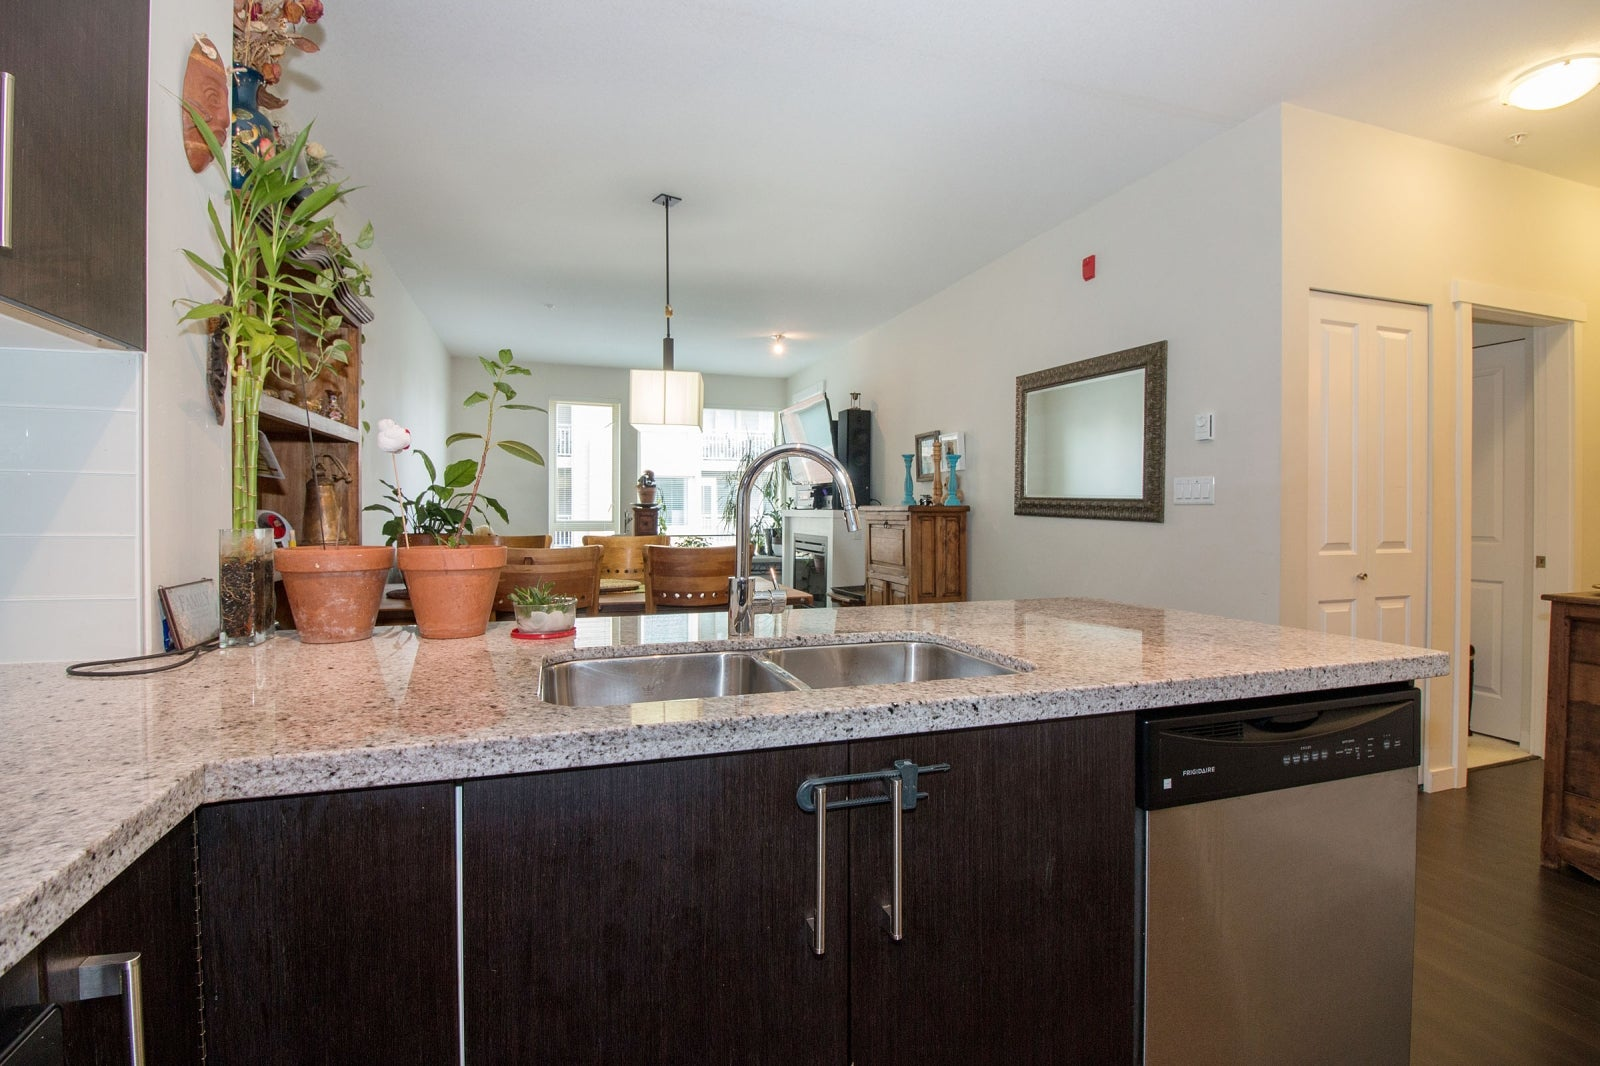 306 139 W 22ND STREET - Central Lonsdale Apartment/Condo for sale, 2 Bedrooms (R2201915) #11